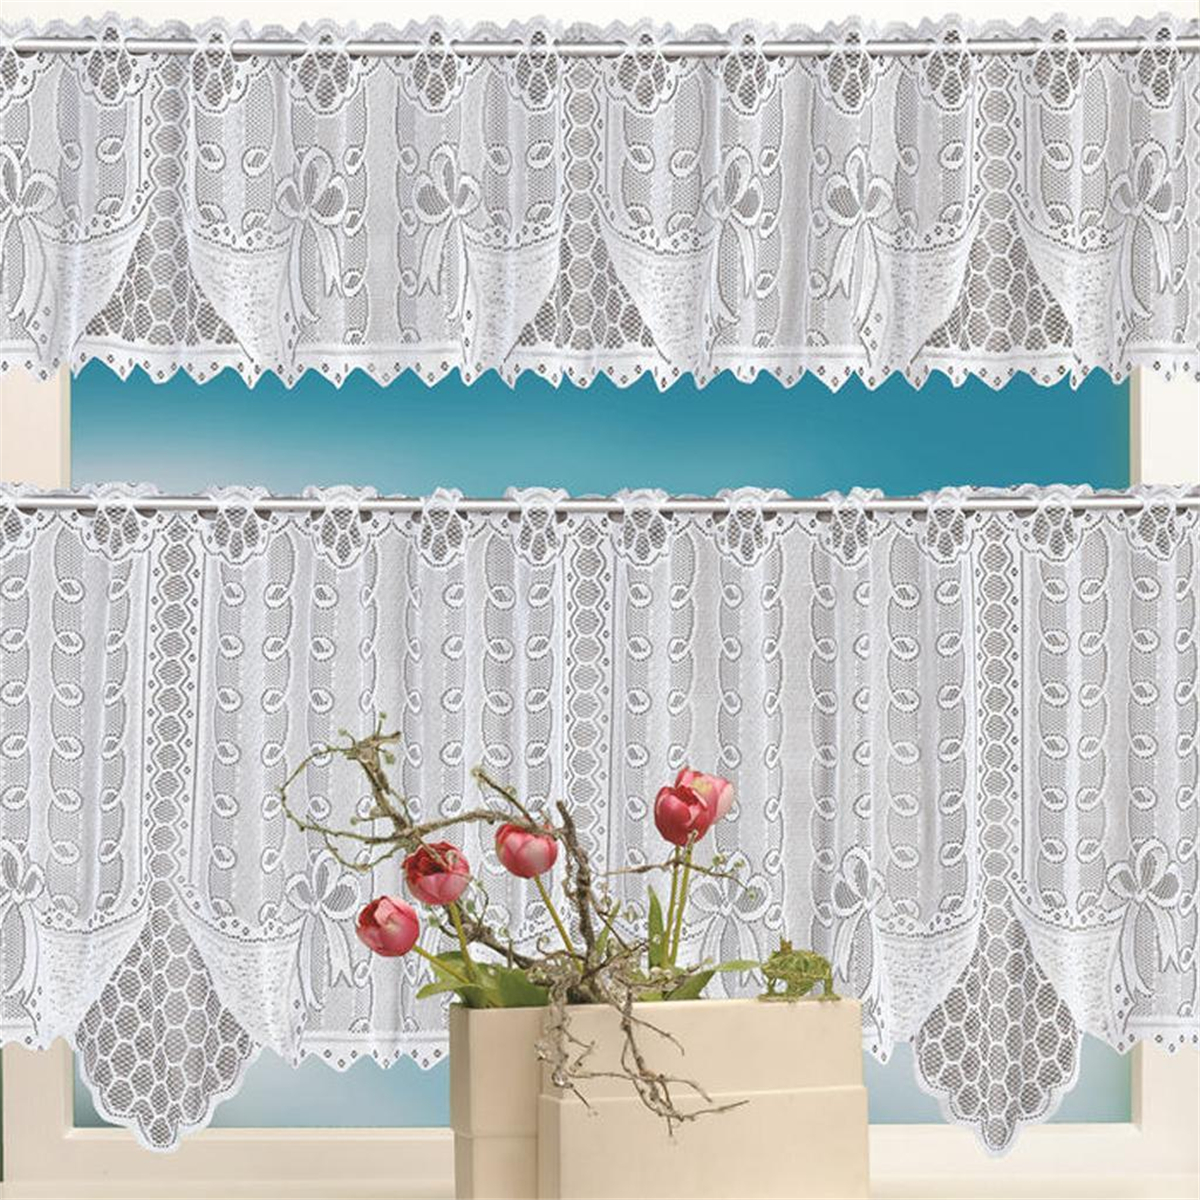 2pcs Lace Coffee Cafe Net Curtains Panel Tier Curtain Set Kitchen ...